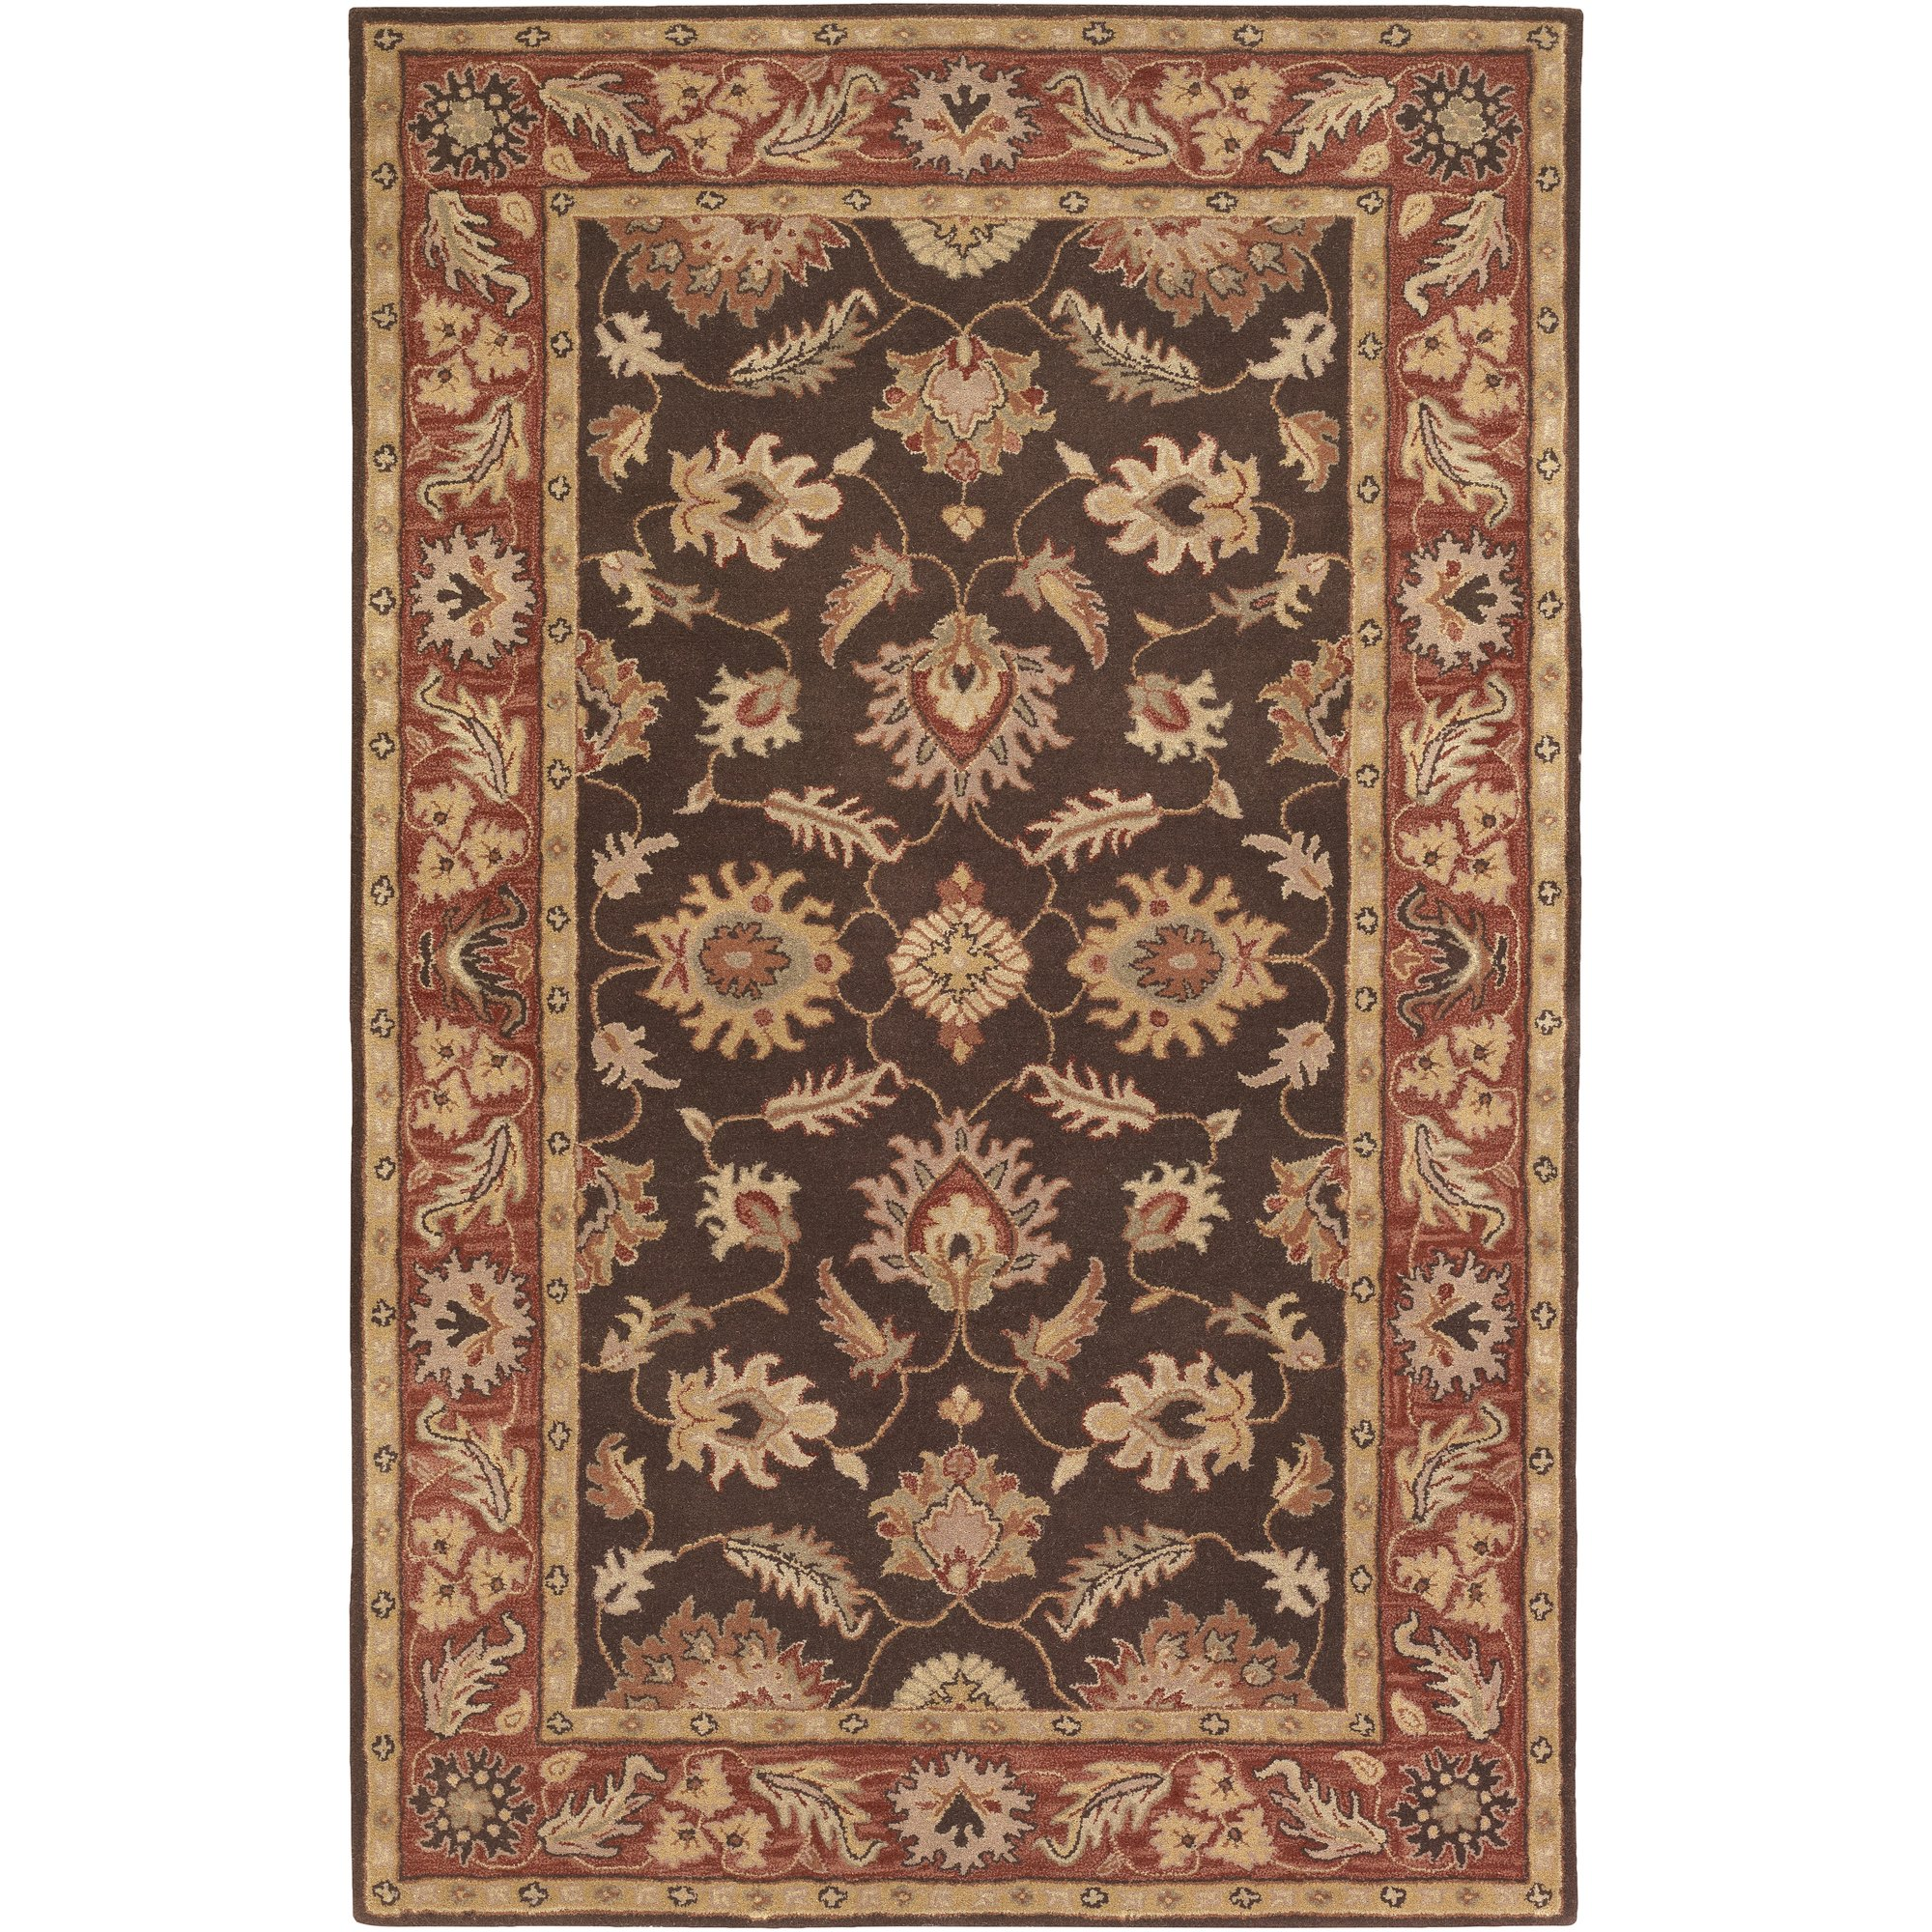 Surya Caesar CAE-1036 Classic Hand Tufted 100% Wool Dark Chocolate 2'6'' x 8' Traditional Runner